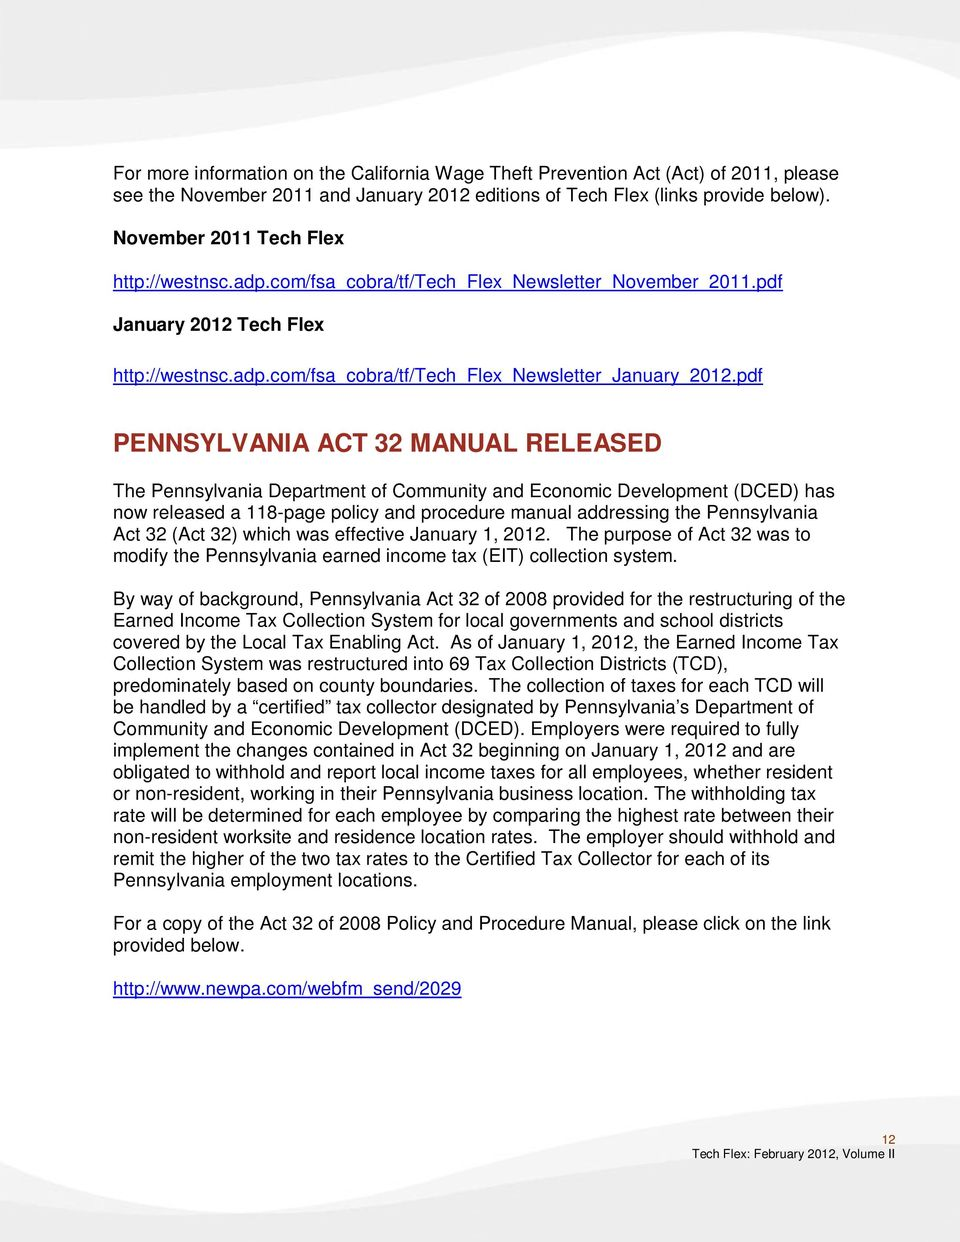 pdf PENNSYLVANIA ACT 32 MANUAL RELEASED The Pennsylvania Department of Community and Economic Development (DCED) has now released a 118-page policy and procedure manual addressing the Pennsylvania